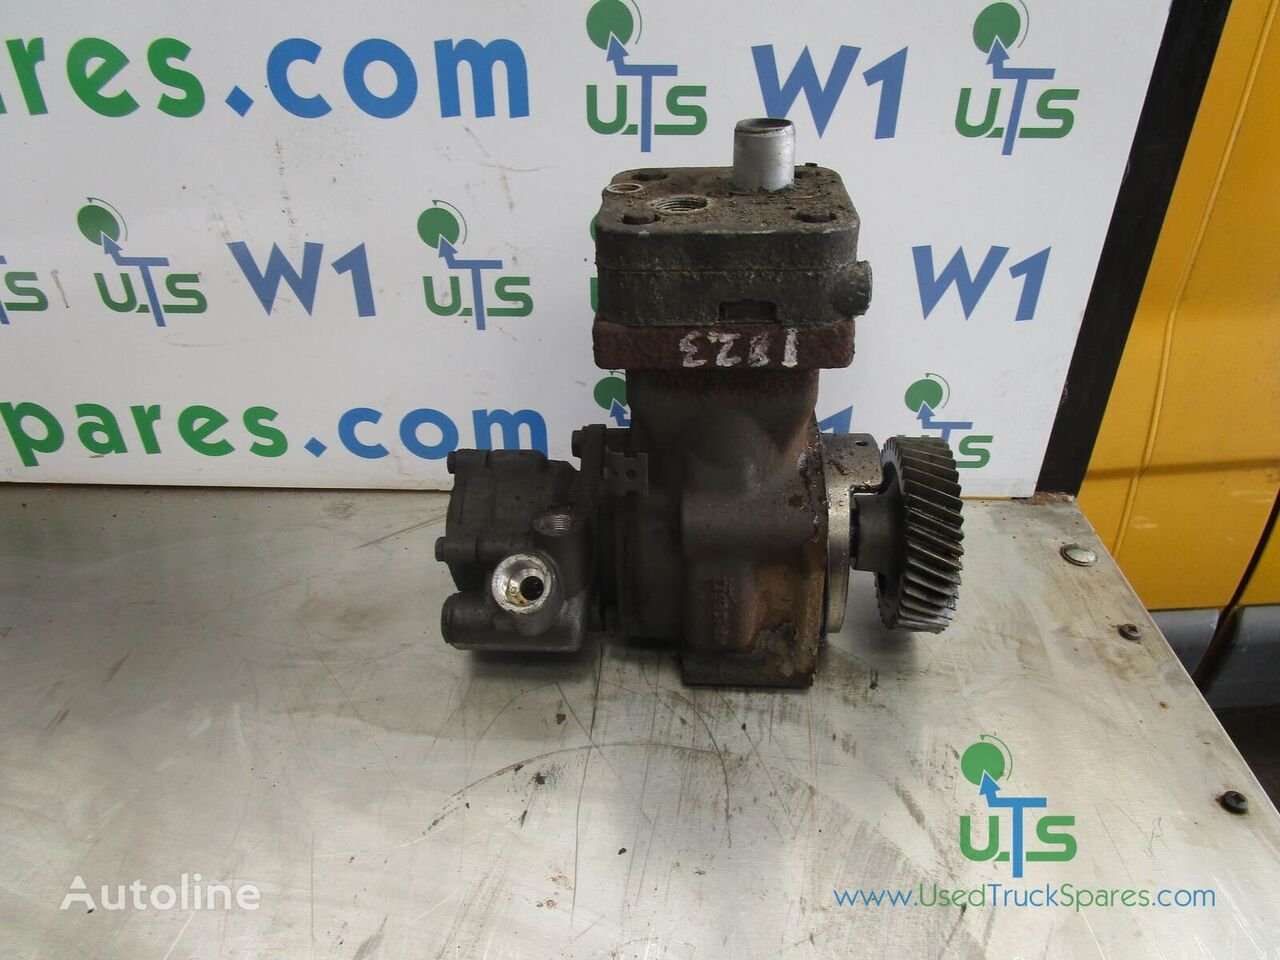 MERCEDES-BENZ POWER STEERING PUMP pneumatic compressor for MERCEDES-BENZ 1323/1823/2528 truck